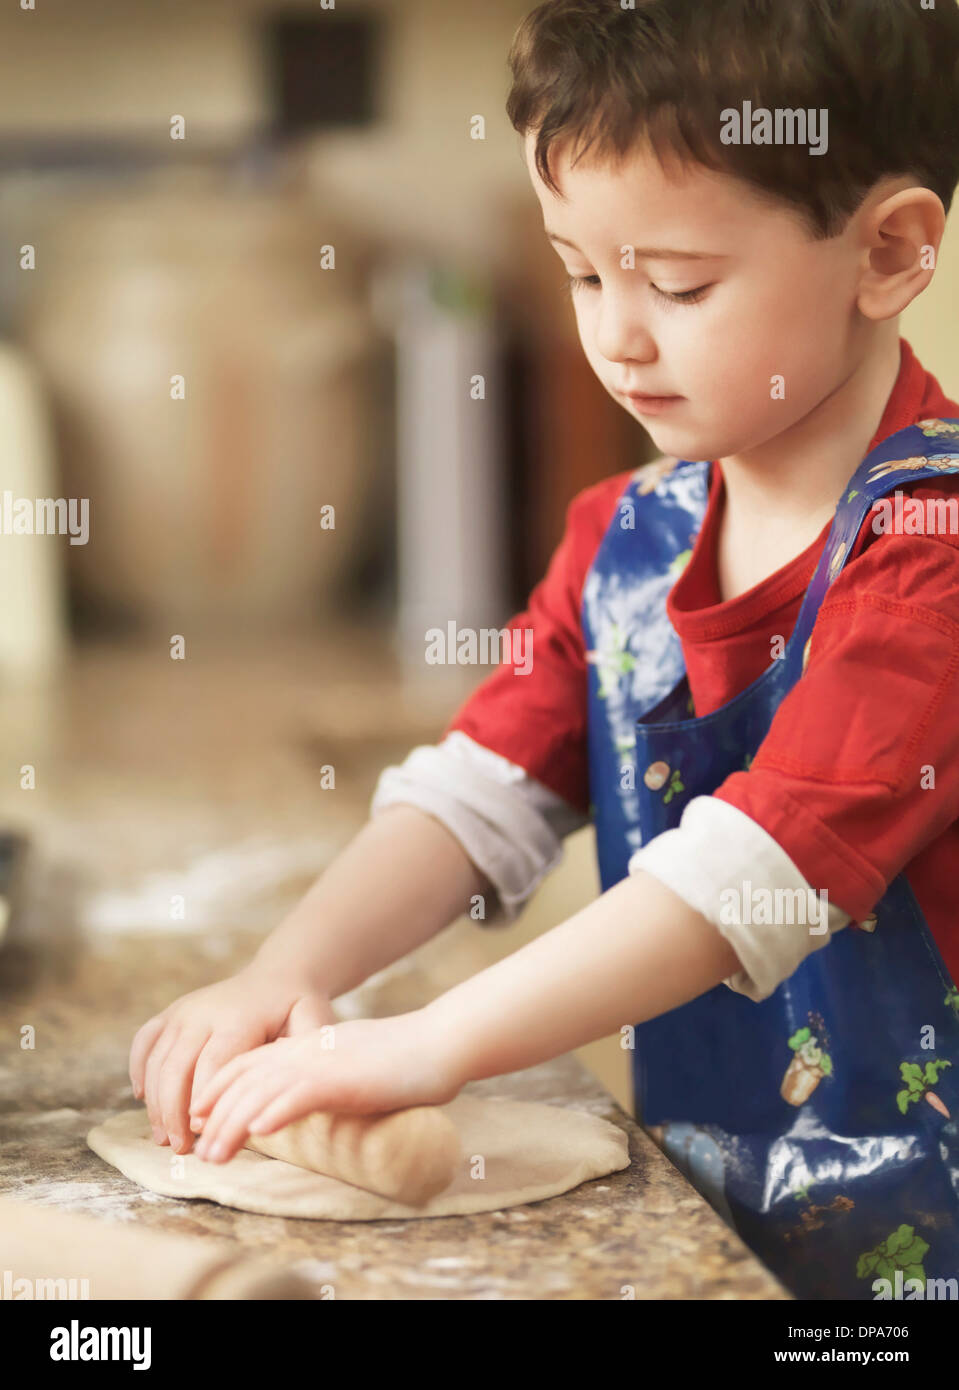 Child kneading dough with rolling pin - Stock Image